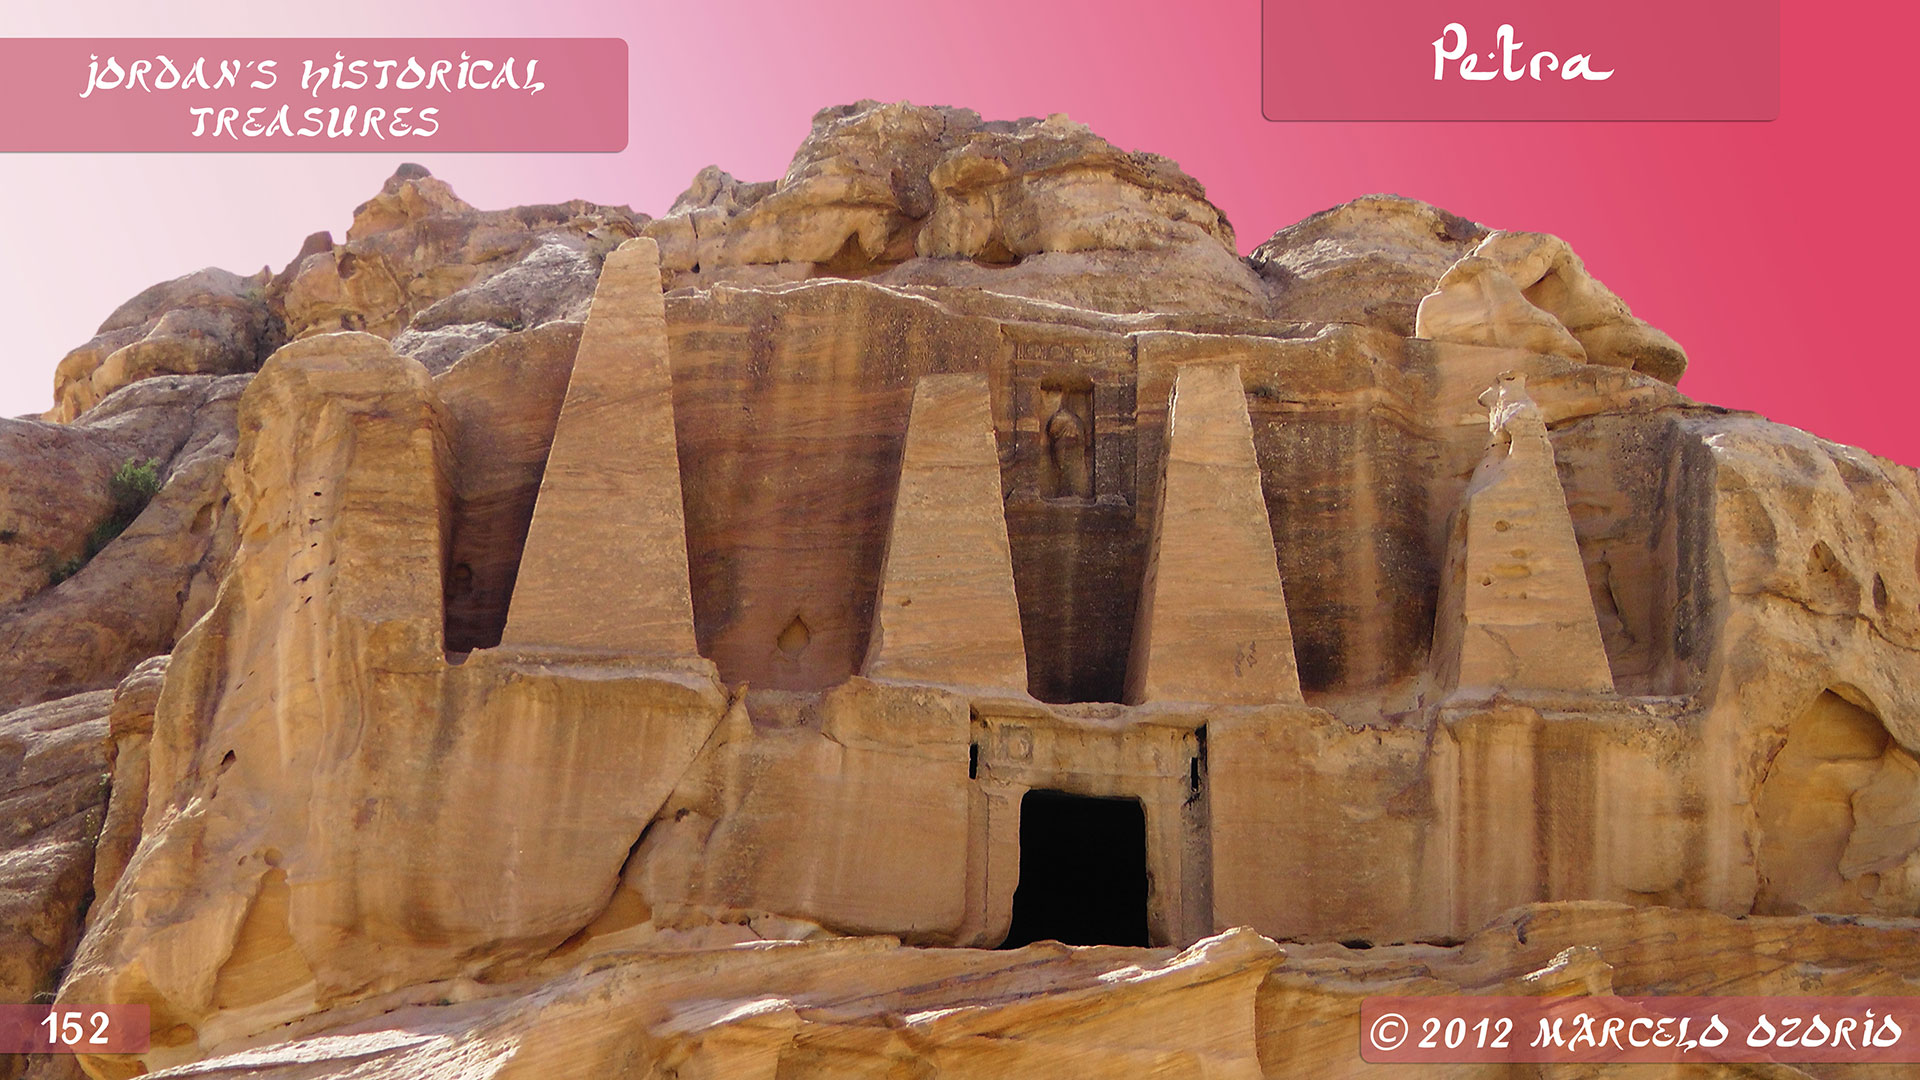 Petra Archaeological City Jordan 72 - The Astonishing Treasure at Petra - Jordan